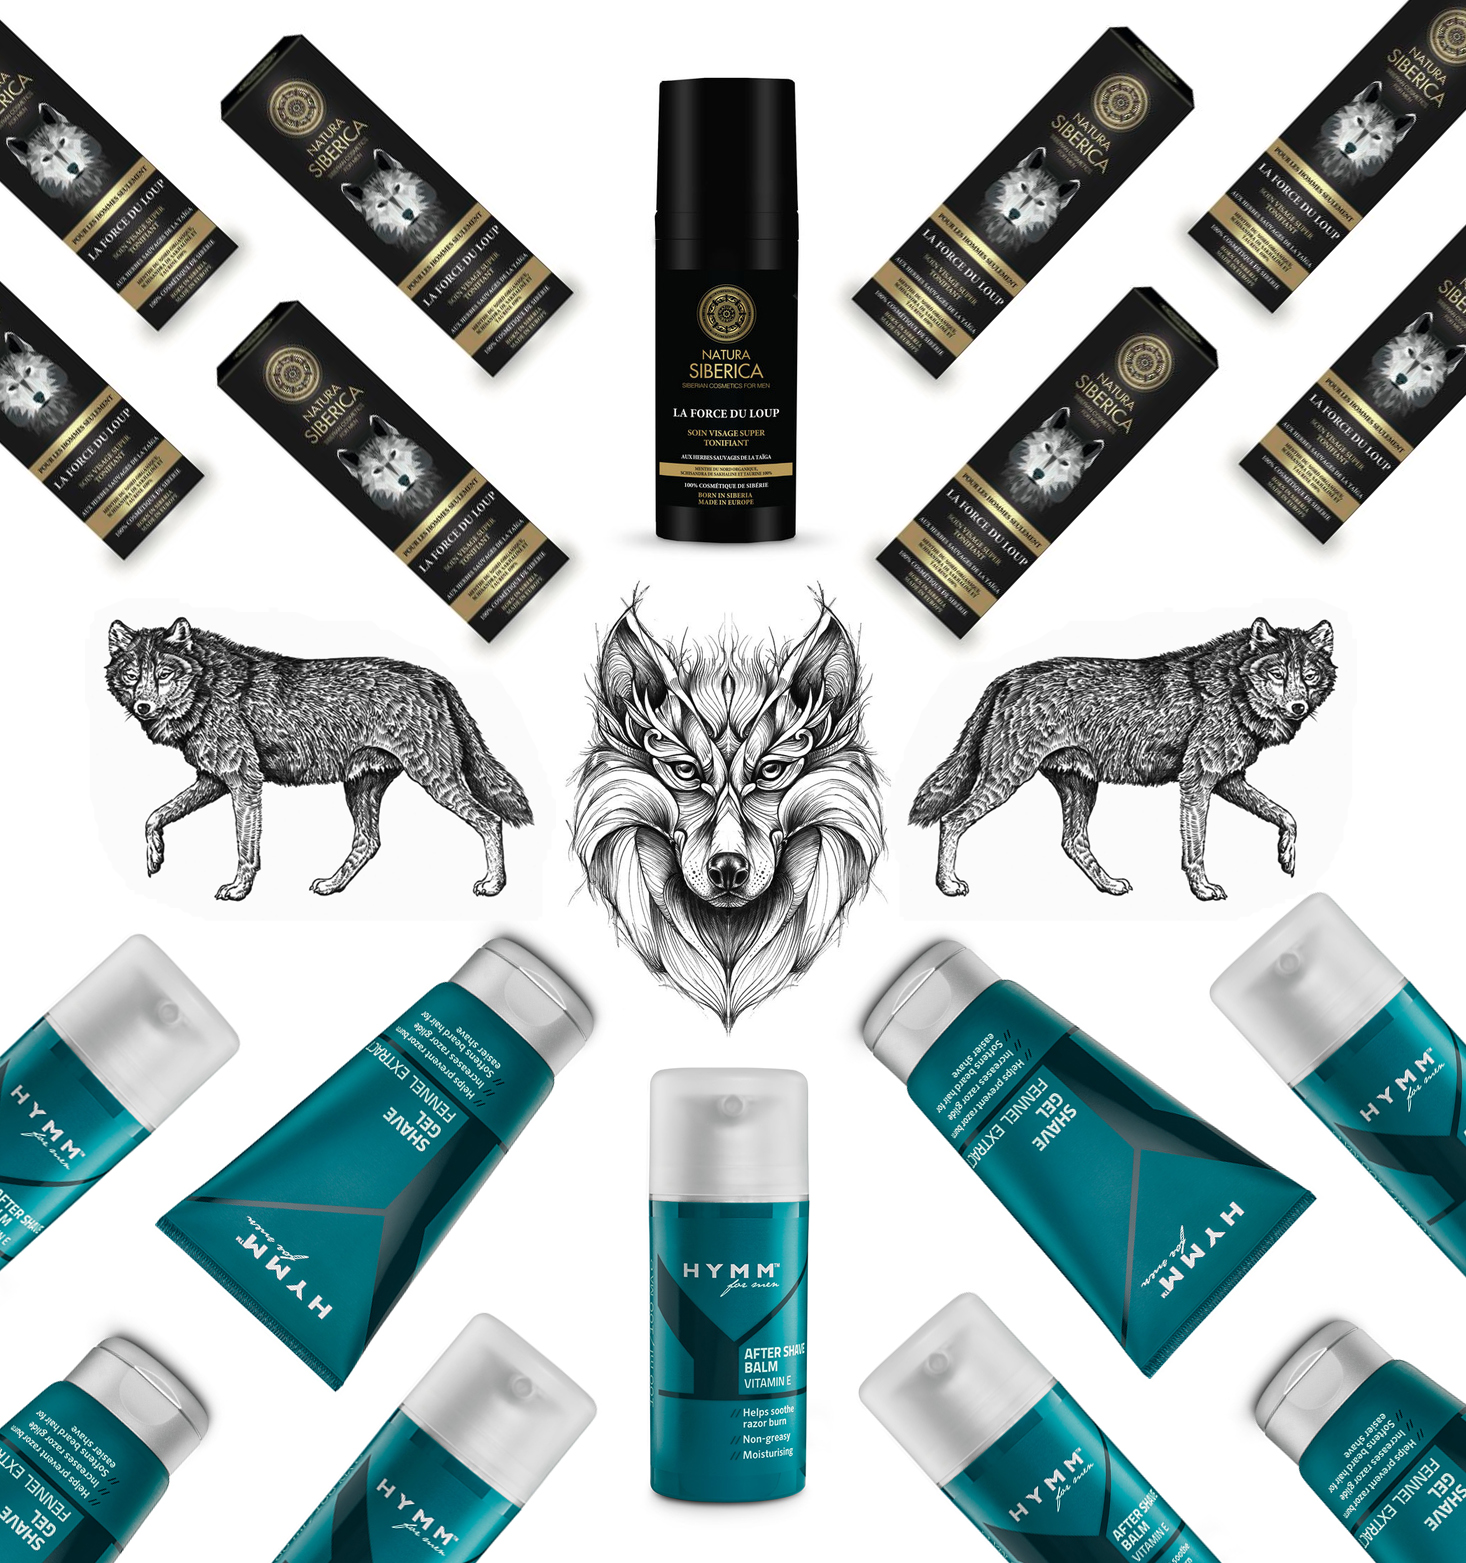 natura-siberica-mens-hymn-amway-juste-magazine-beauty-mens-grooming-article-fashion-wolf